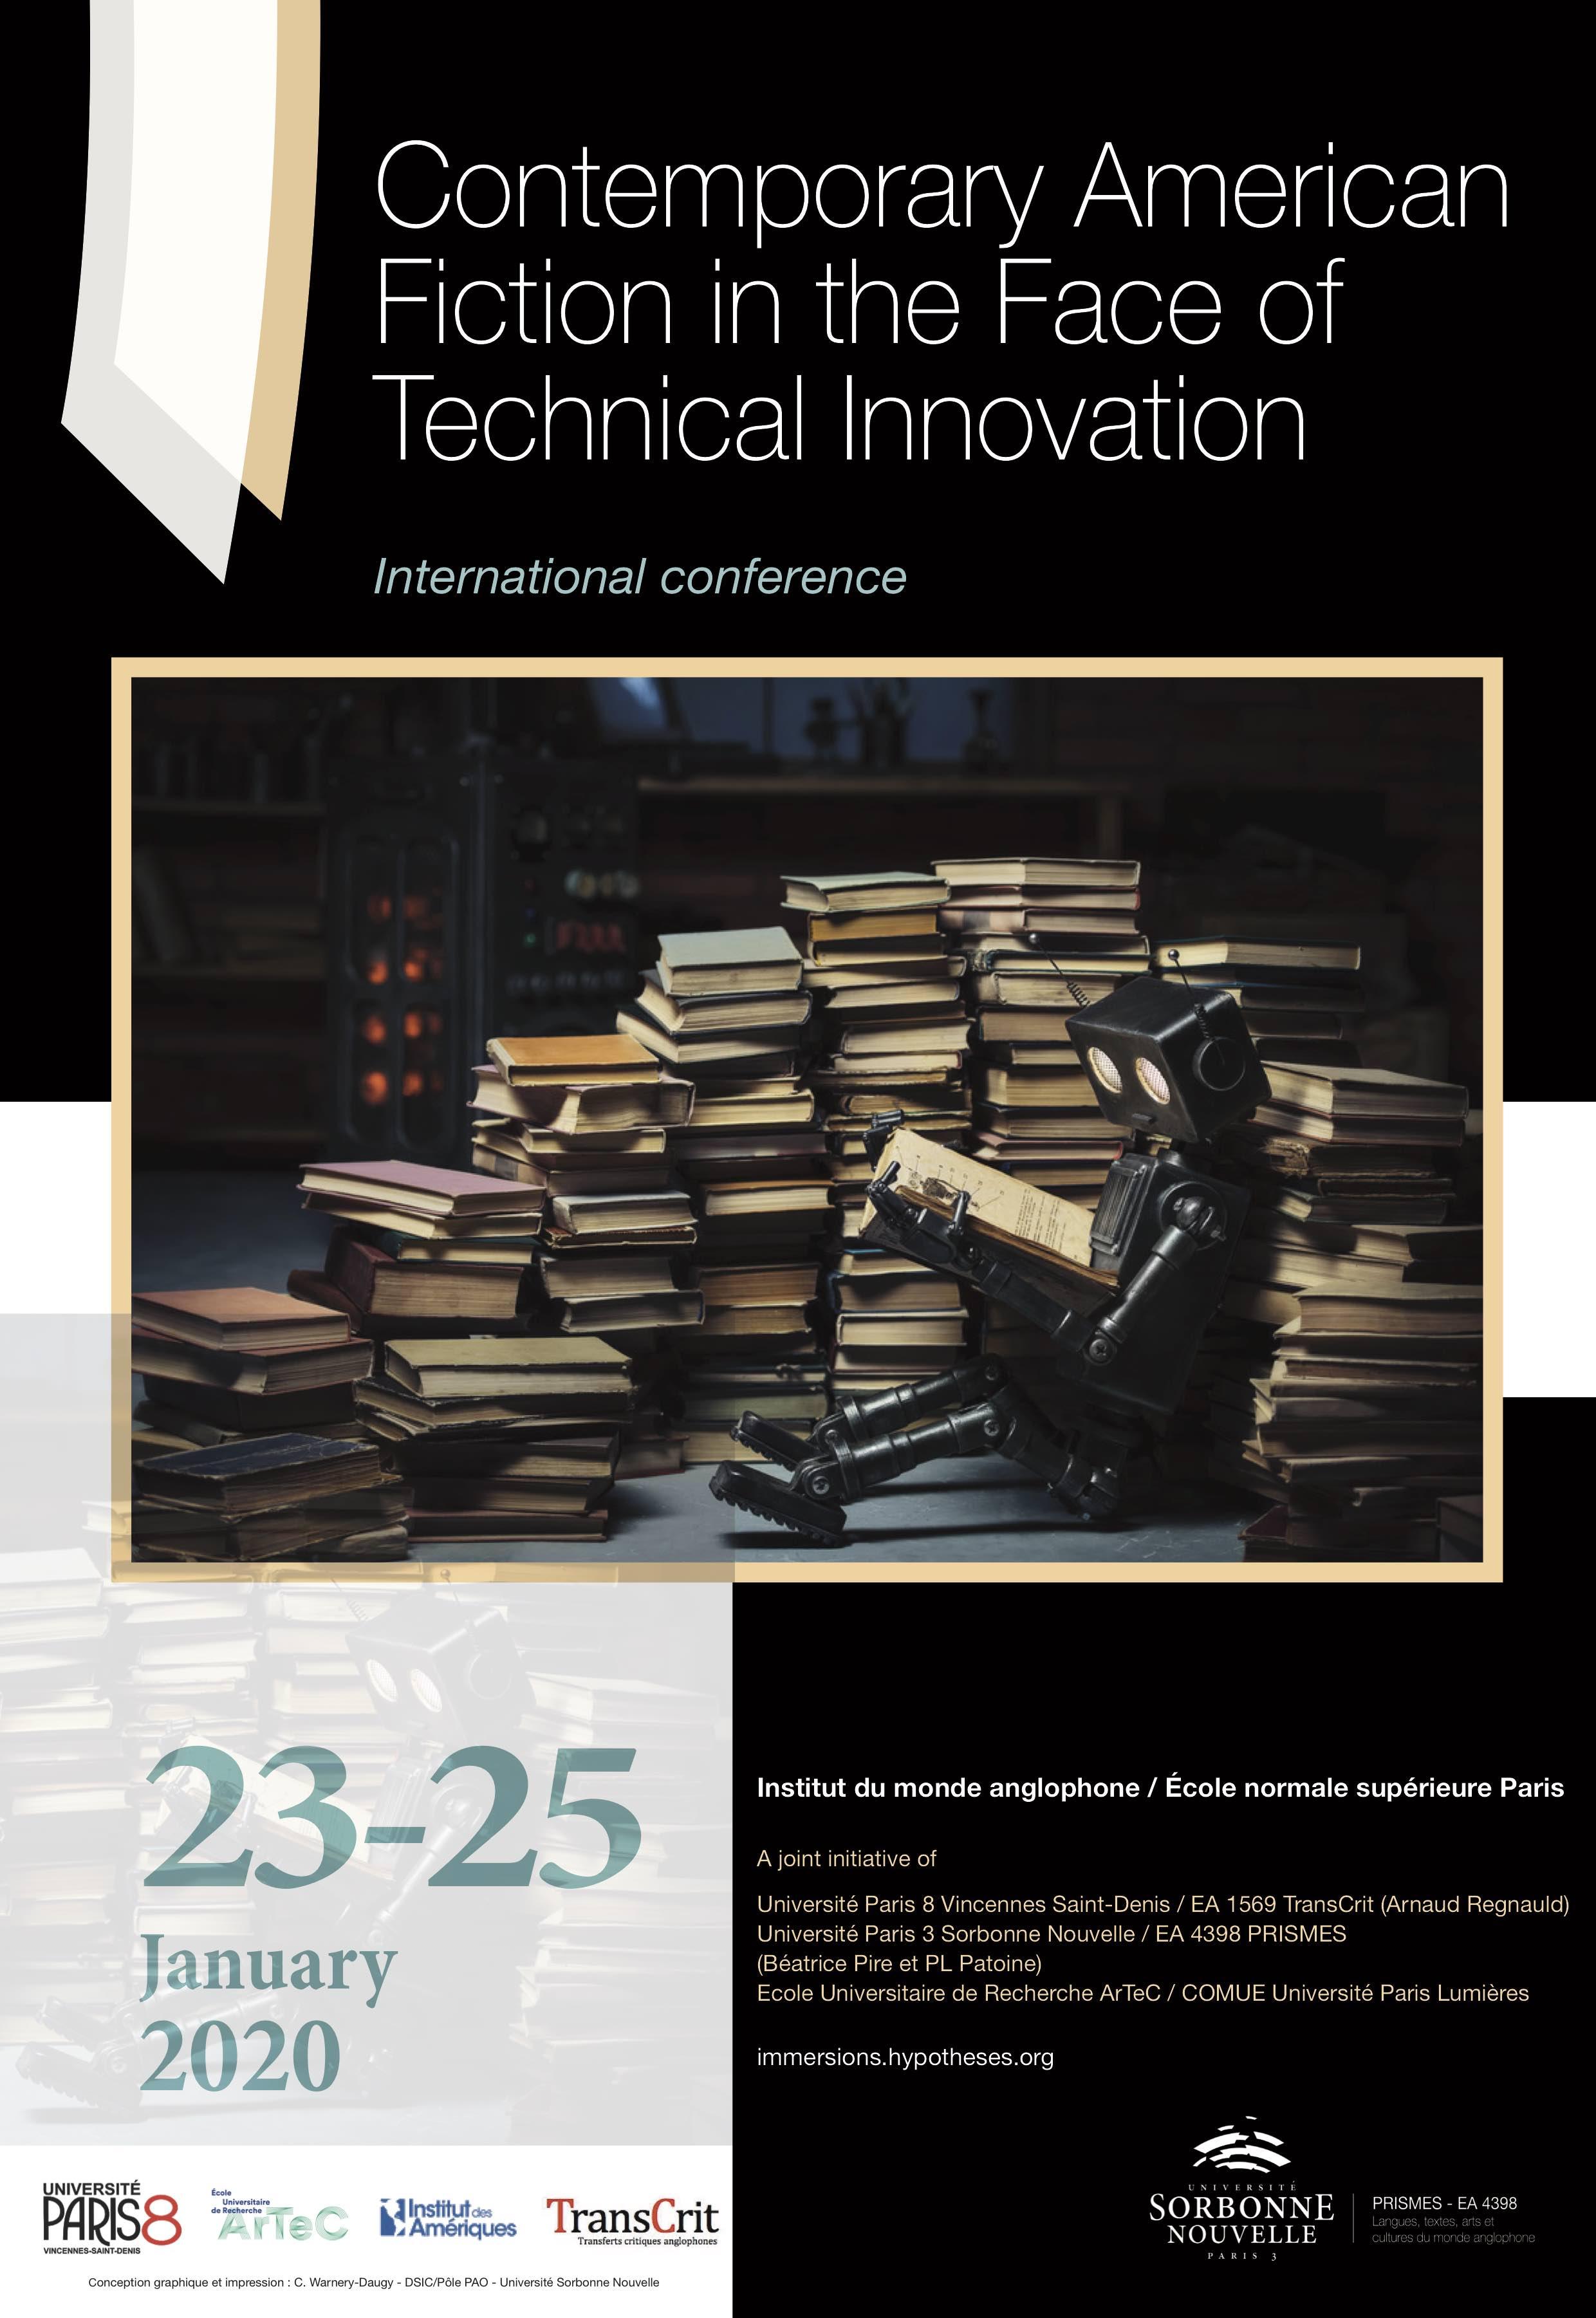 Contemporary American Fiction in the Face of Technical Innovation (Paris)